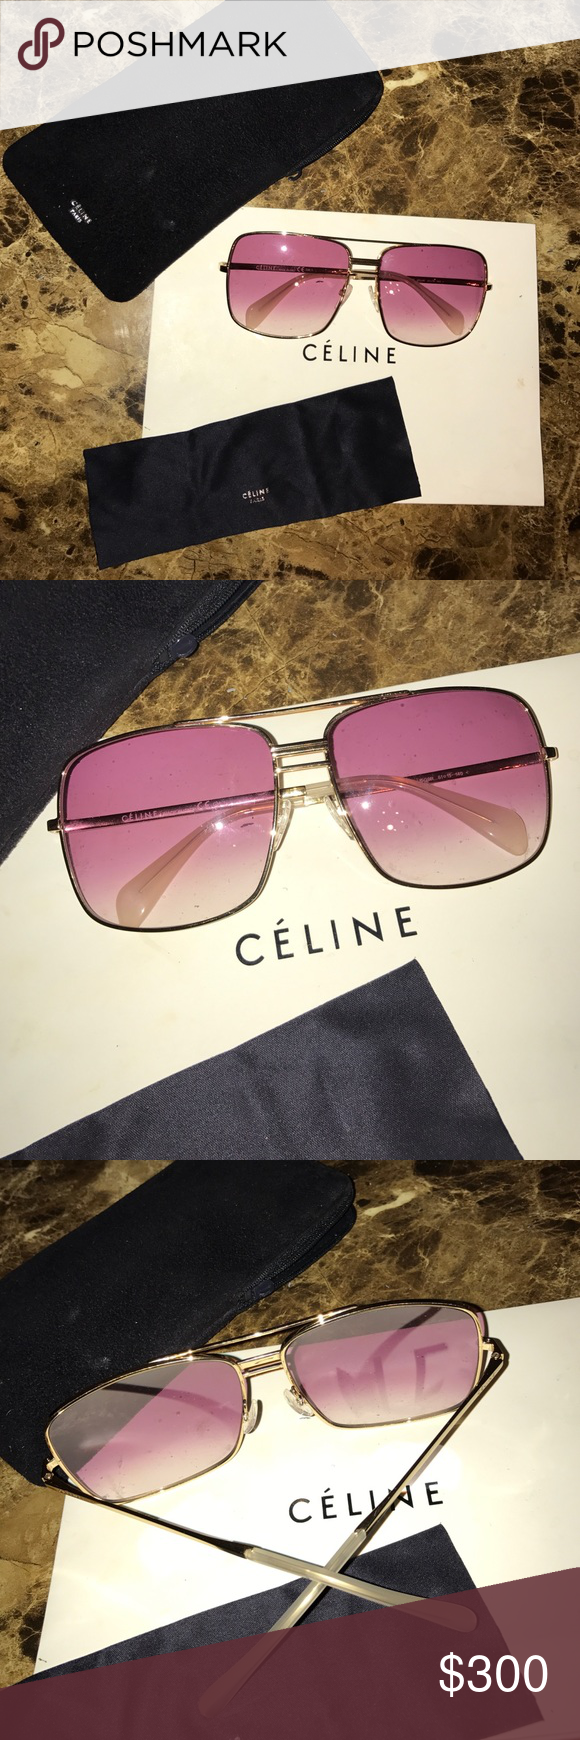 Celine Sunglasses 100% Authentic. Worn no more than twice! I've debated about keeping them, they are gorgeous but are too big for my face frame. Enjoy! Celine Accessories Sunglasses